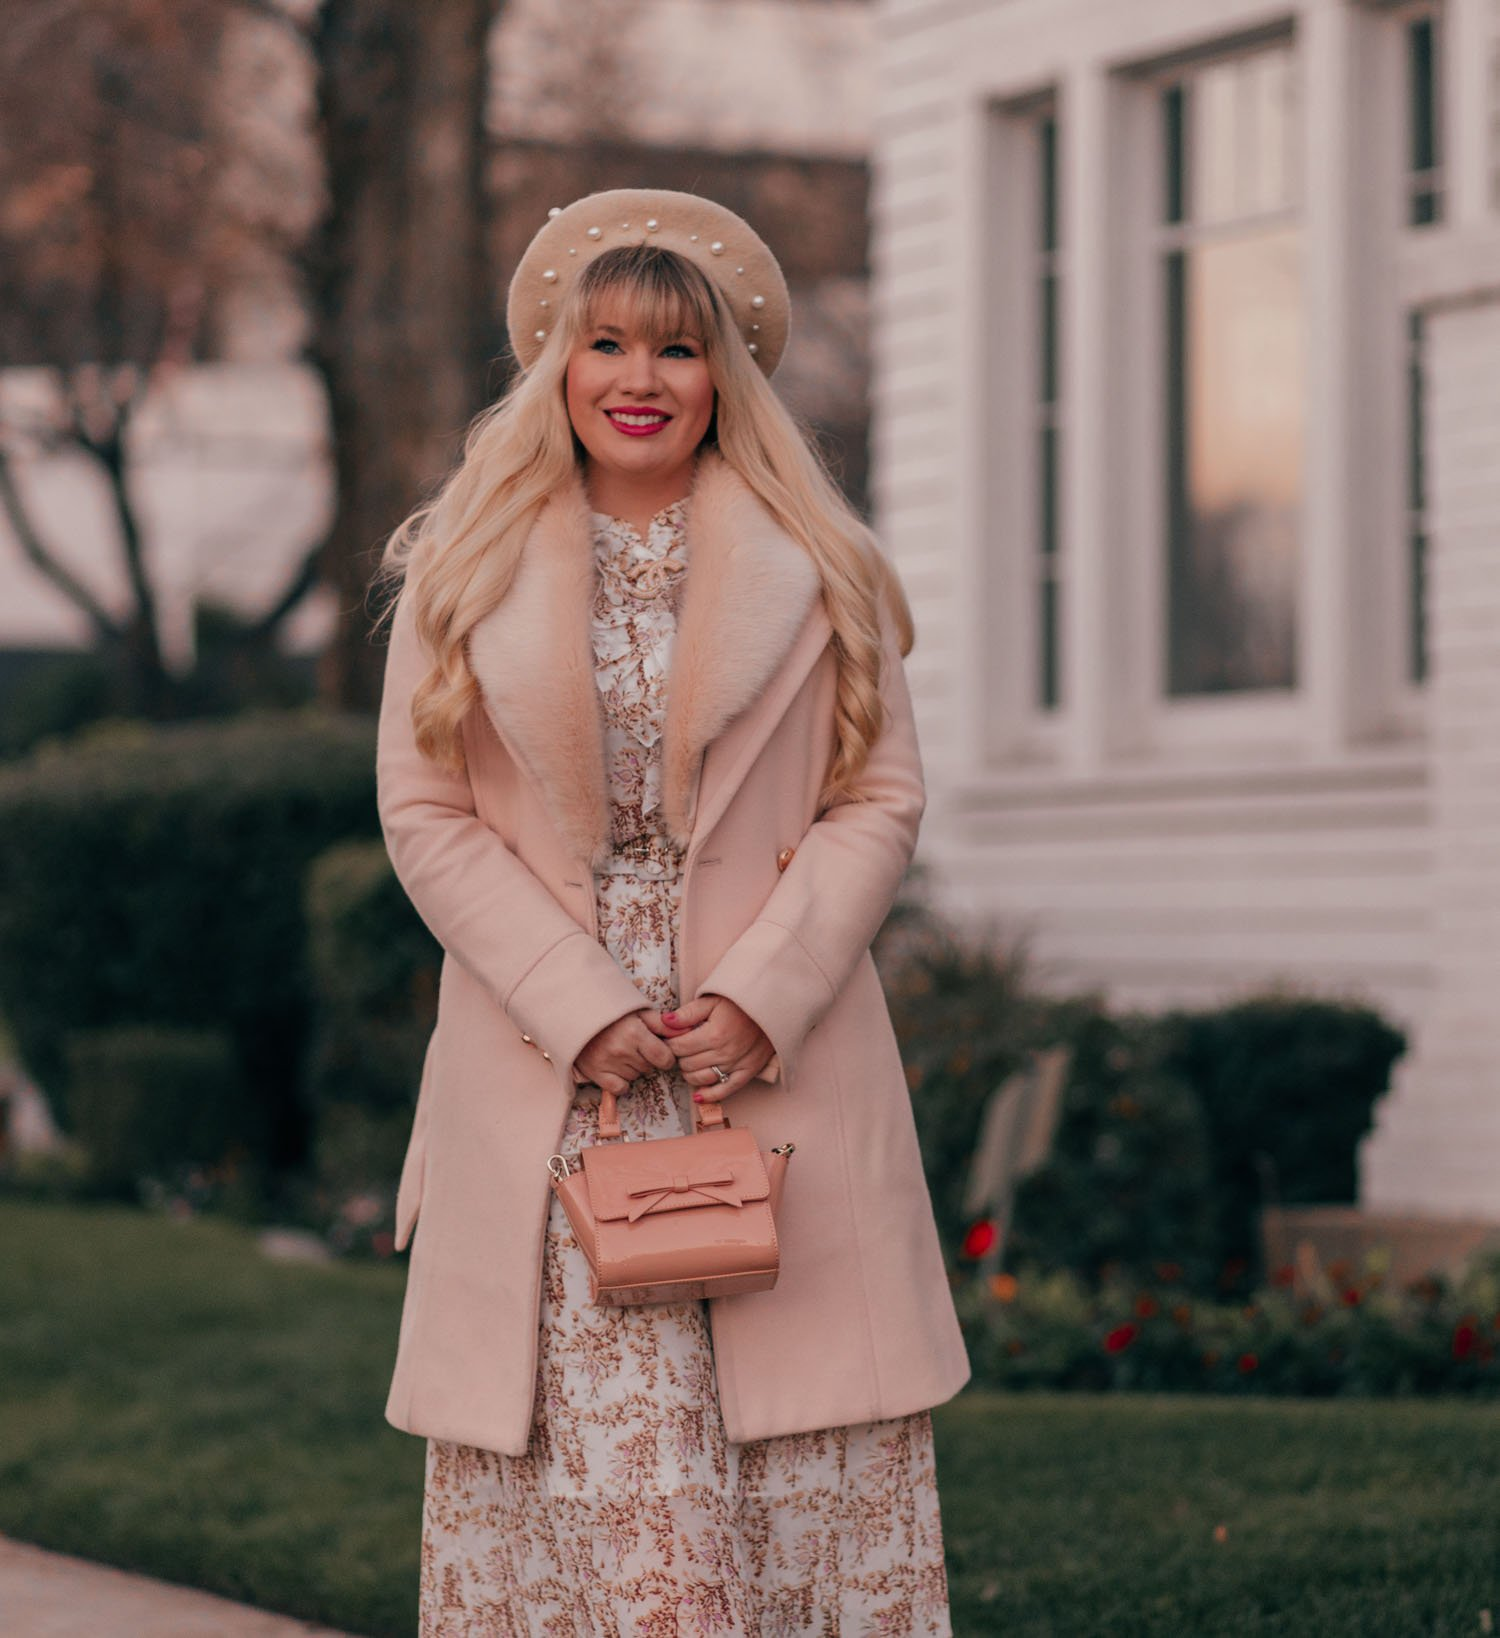 Elizabeth Hugen of Lizzie in Lace wears a neutral feminine winter outfit